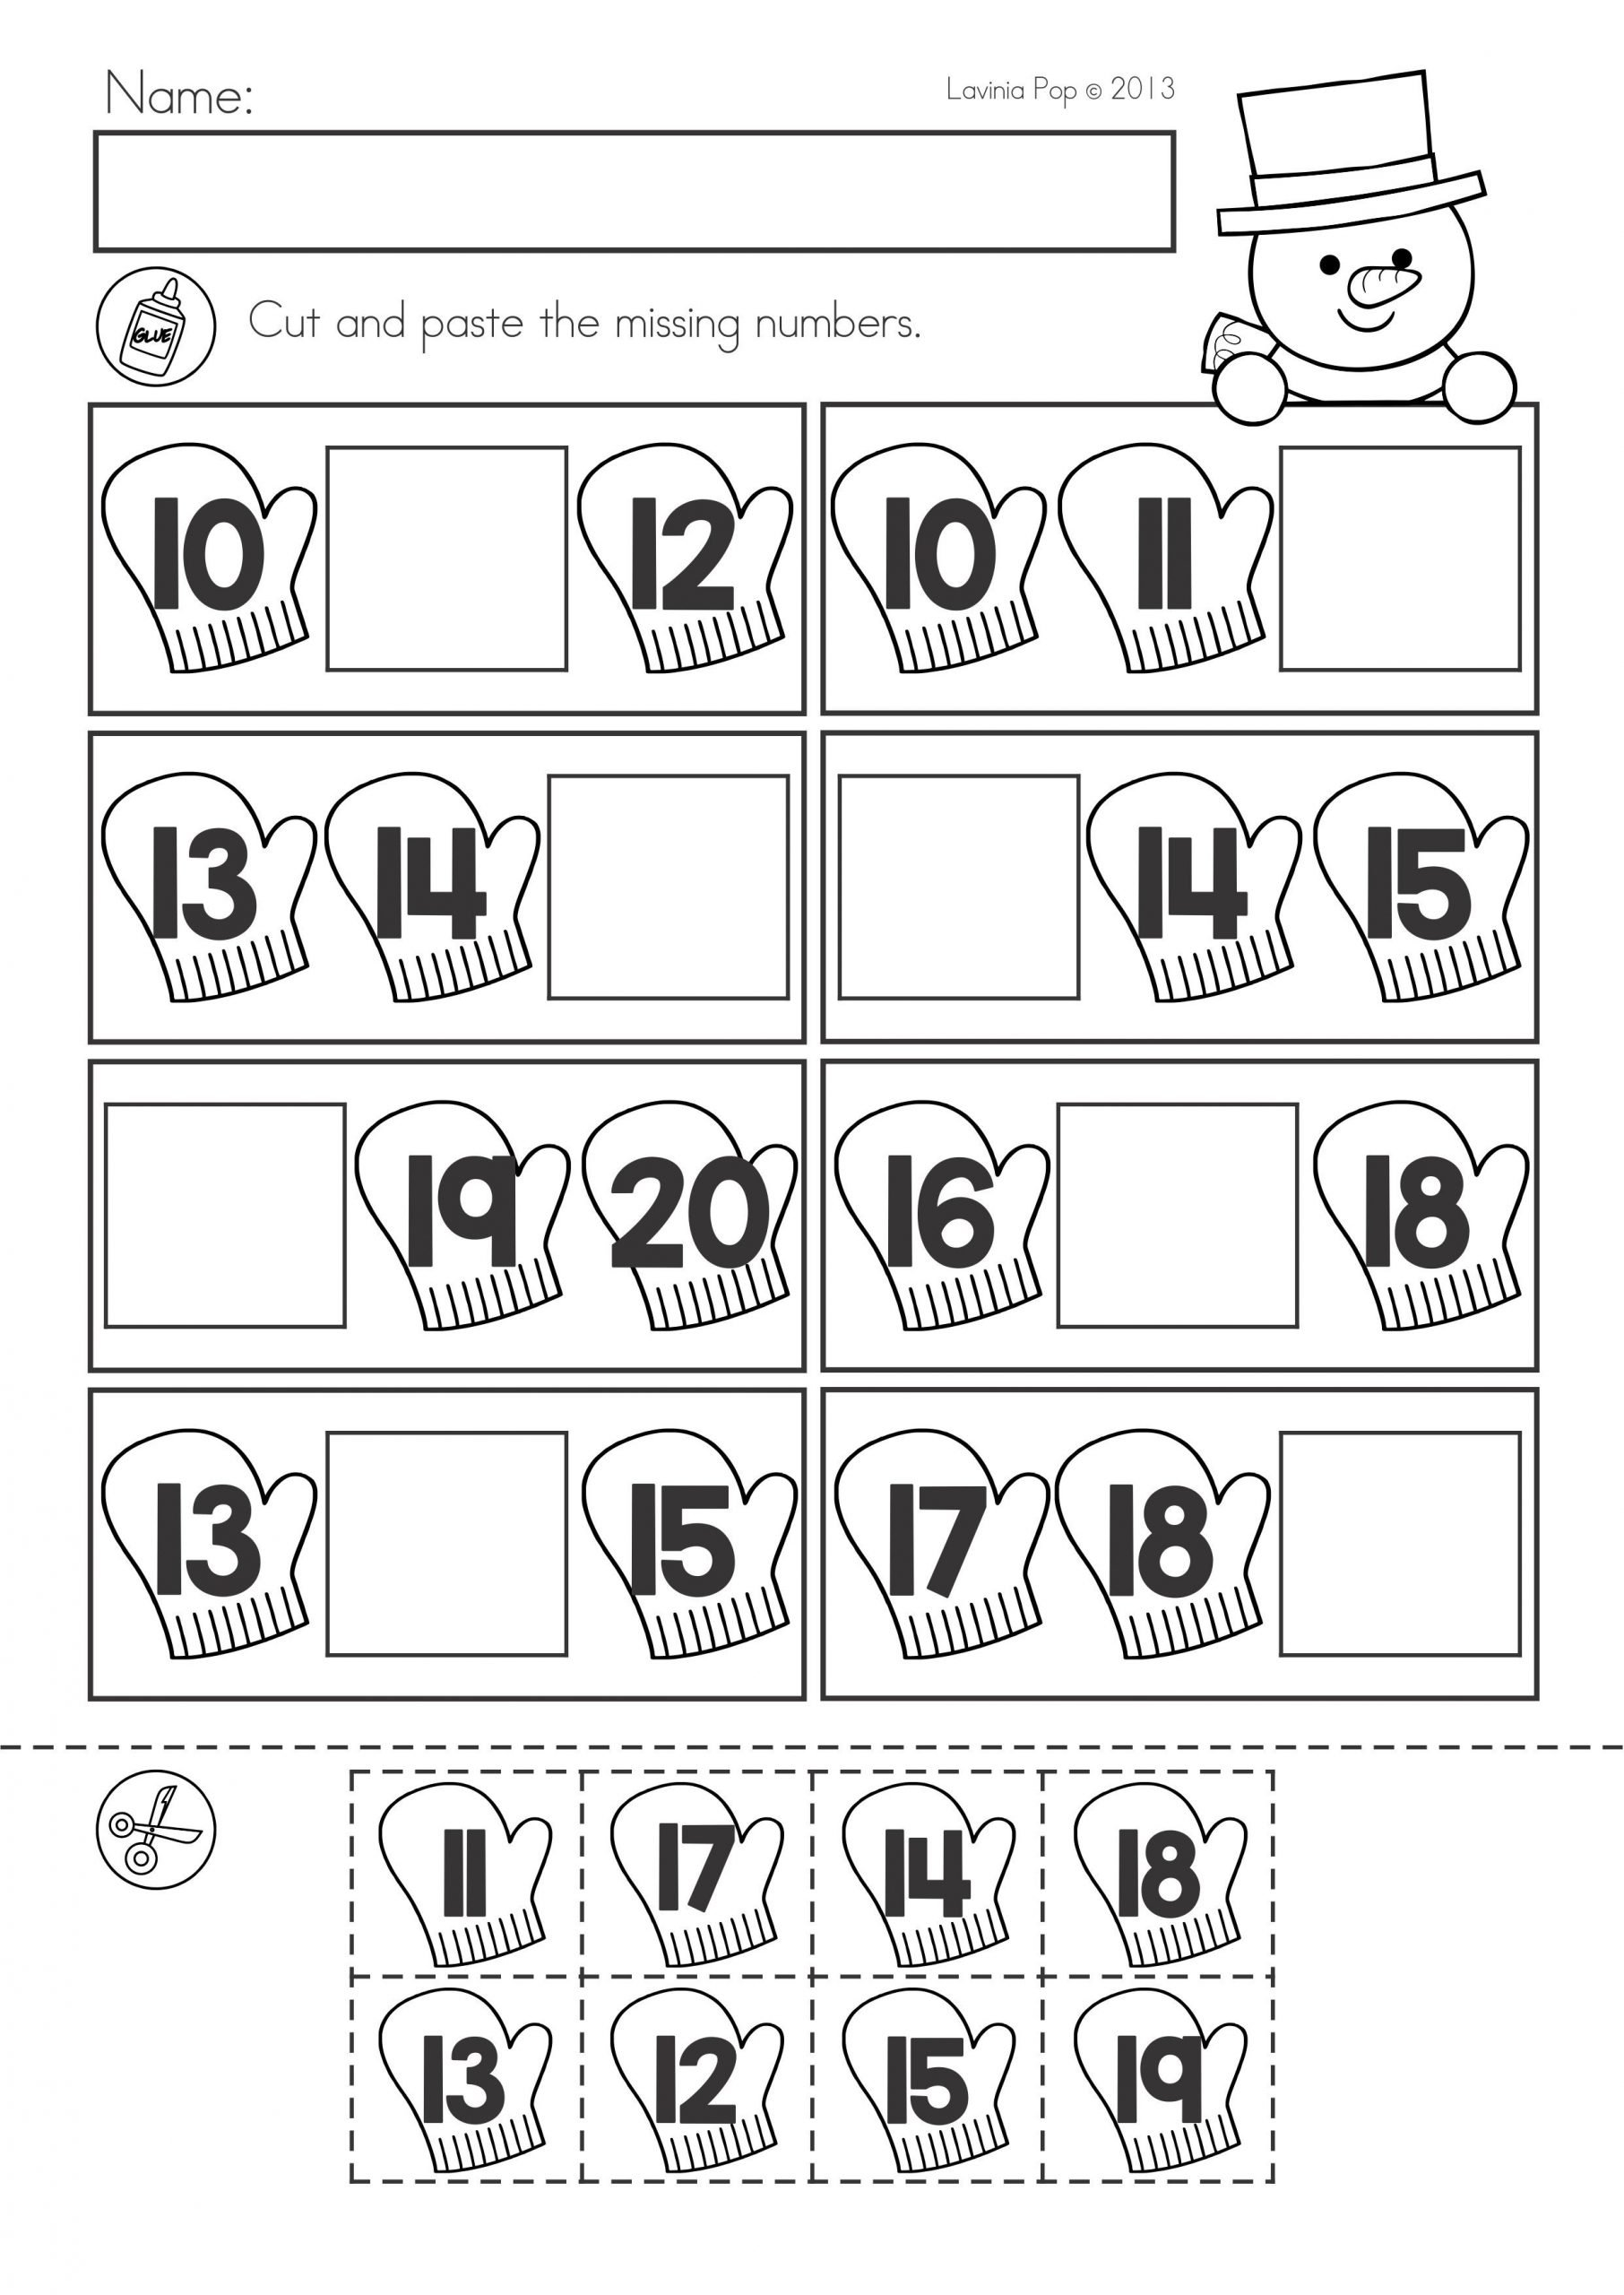 Free Cut and Paste Worksheets Free Printable Cut and Paste Worksheets for Preschool